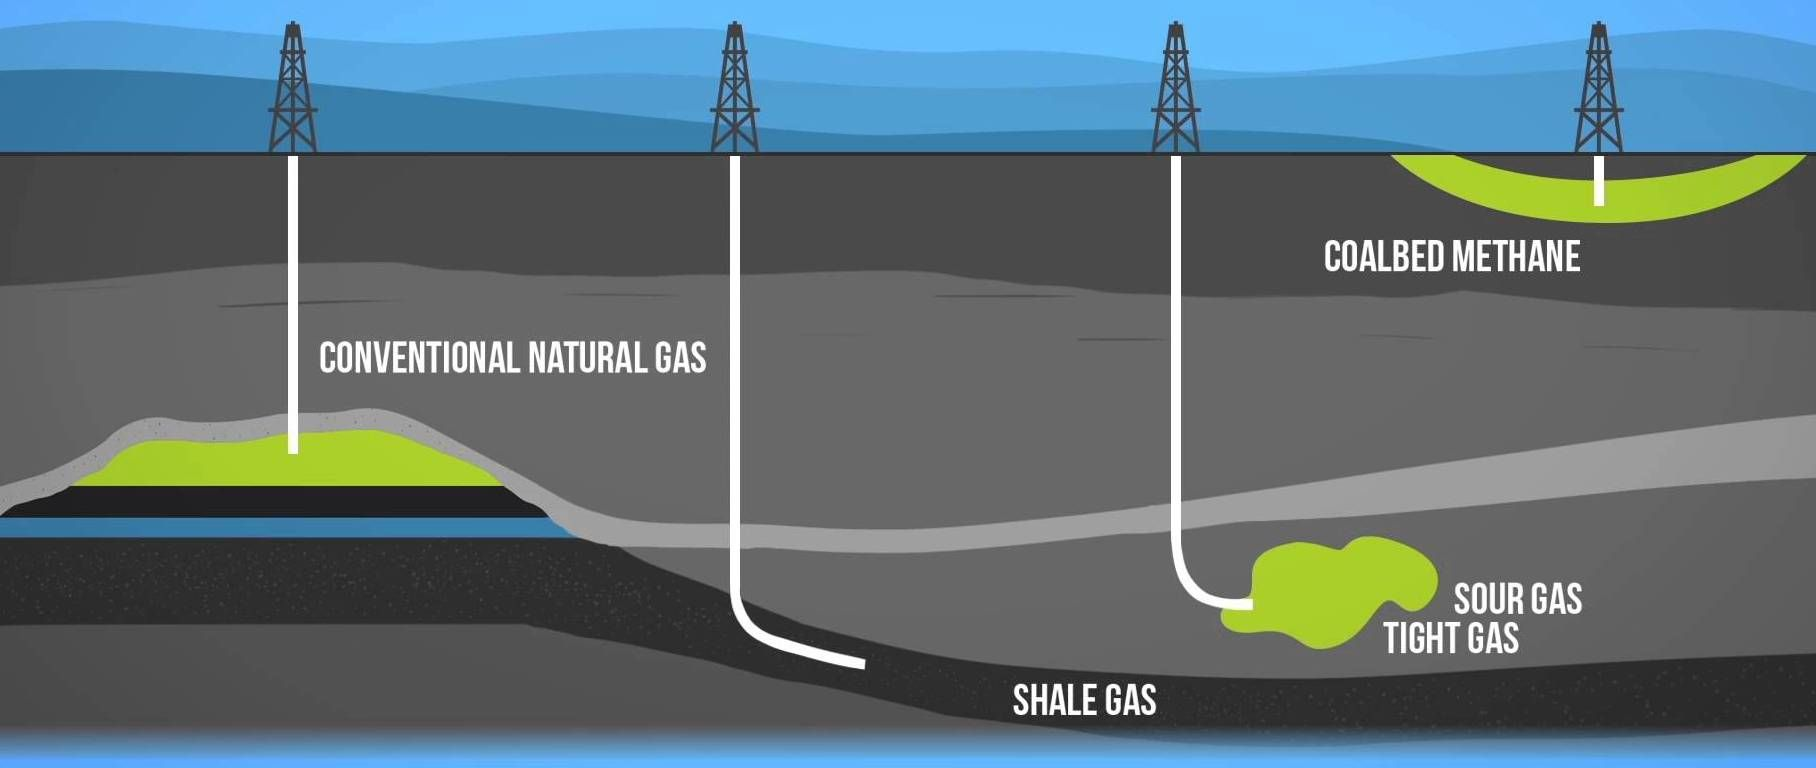 Natural Gas 101 Occurs Deep Beneath The Earth S Surface Natural Gas Consists Mainly Of Methane A Compound Petroleum Engineering Greenhouse Gases Shale Gas